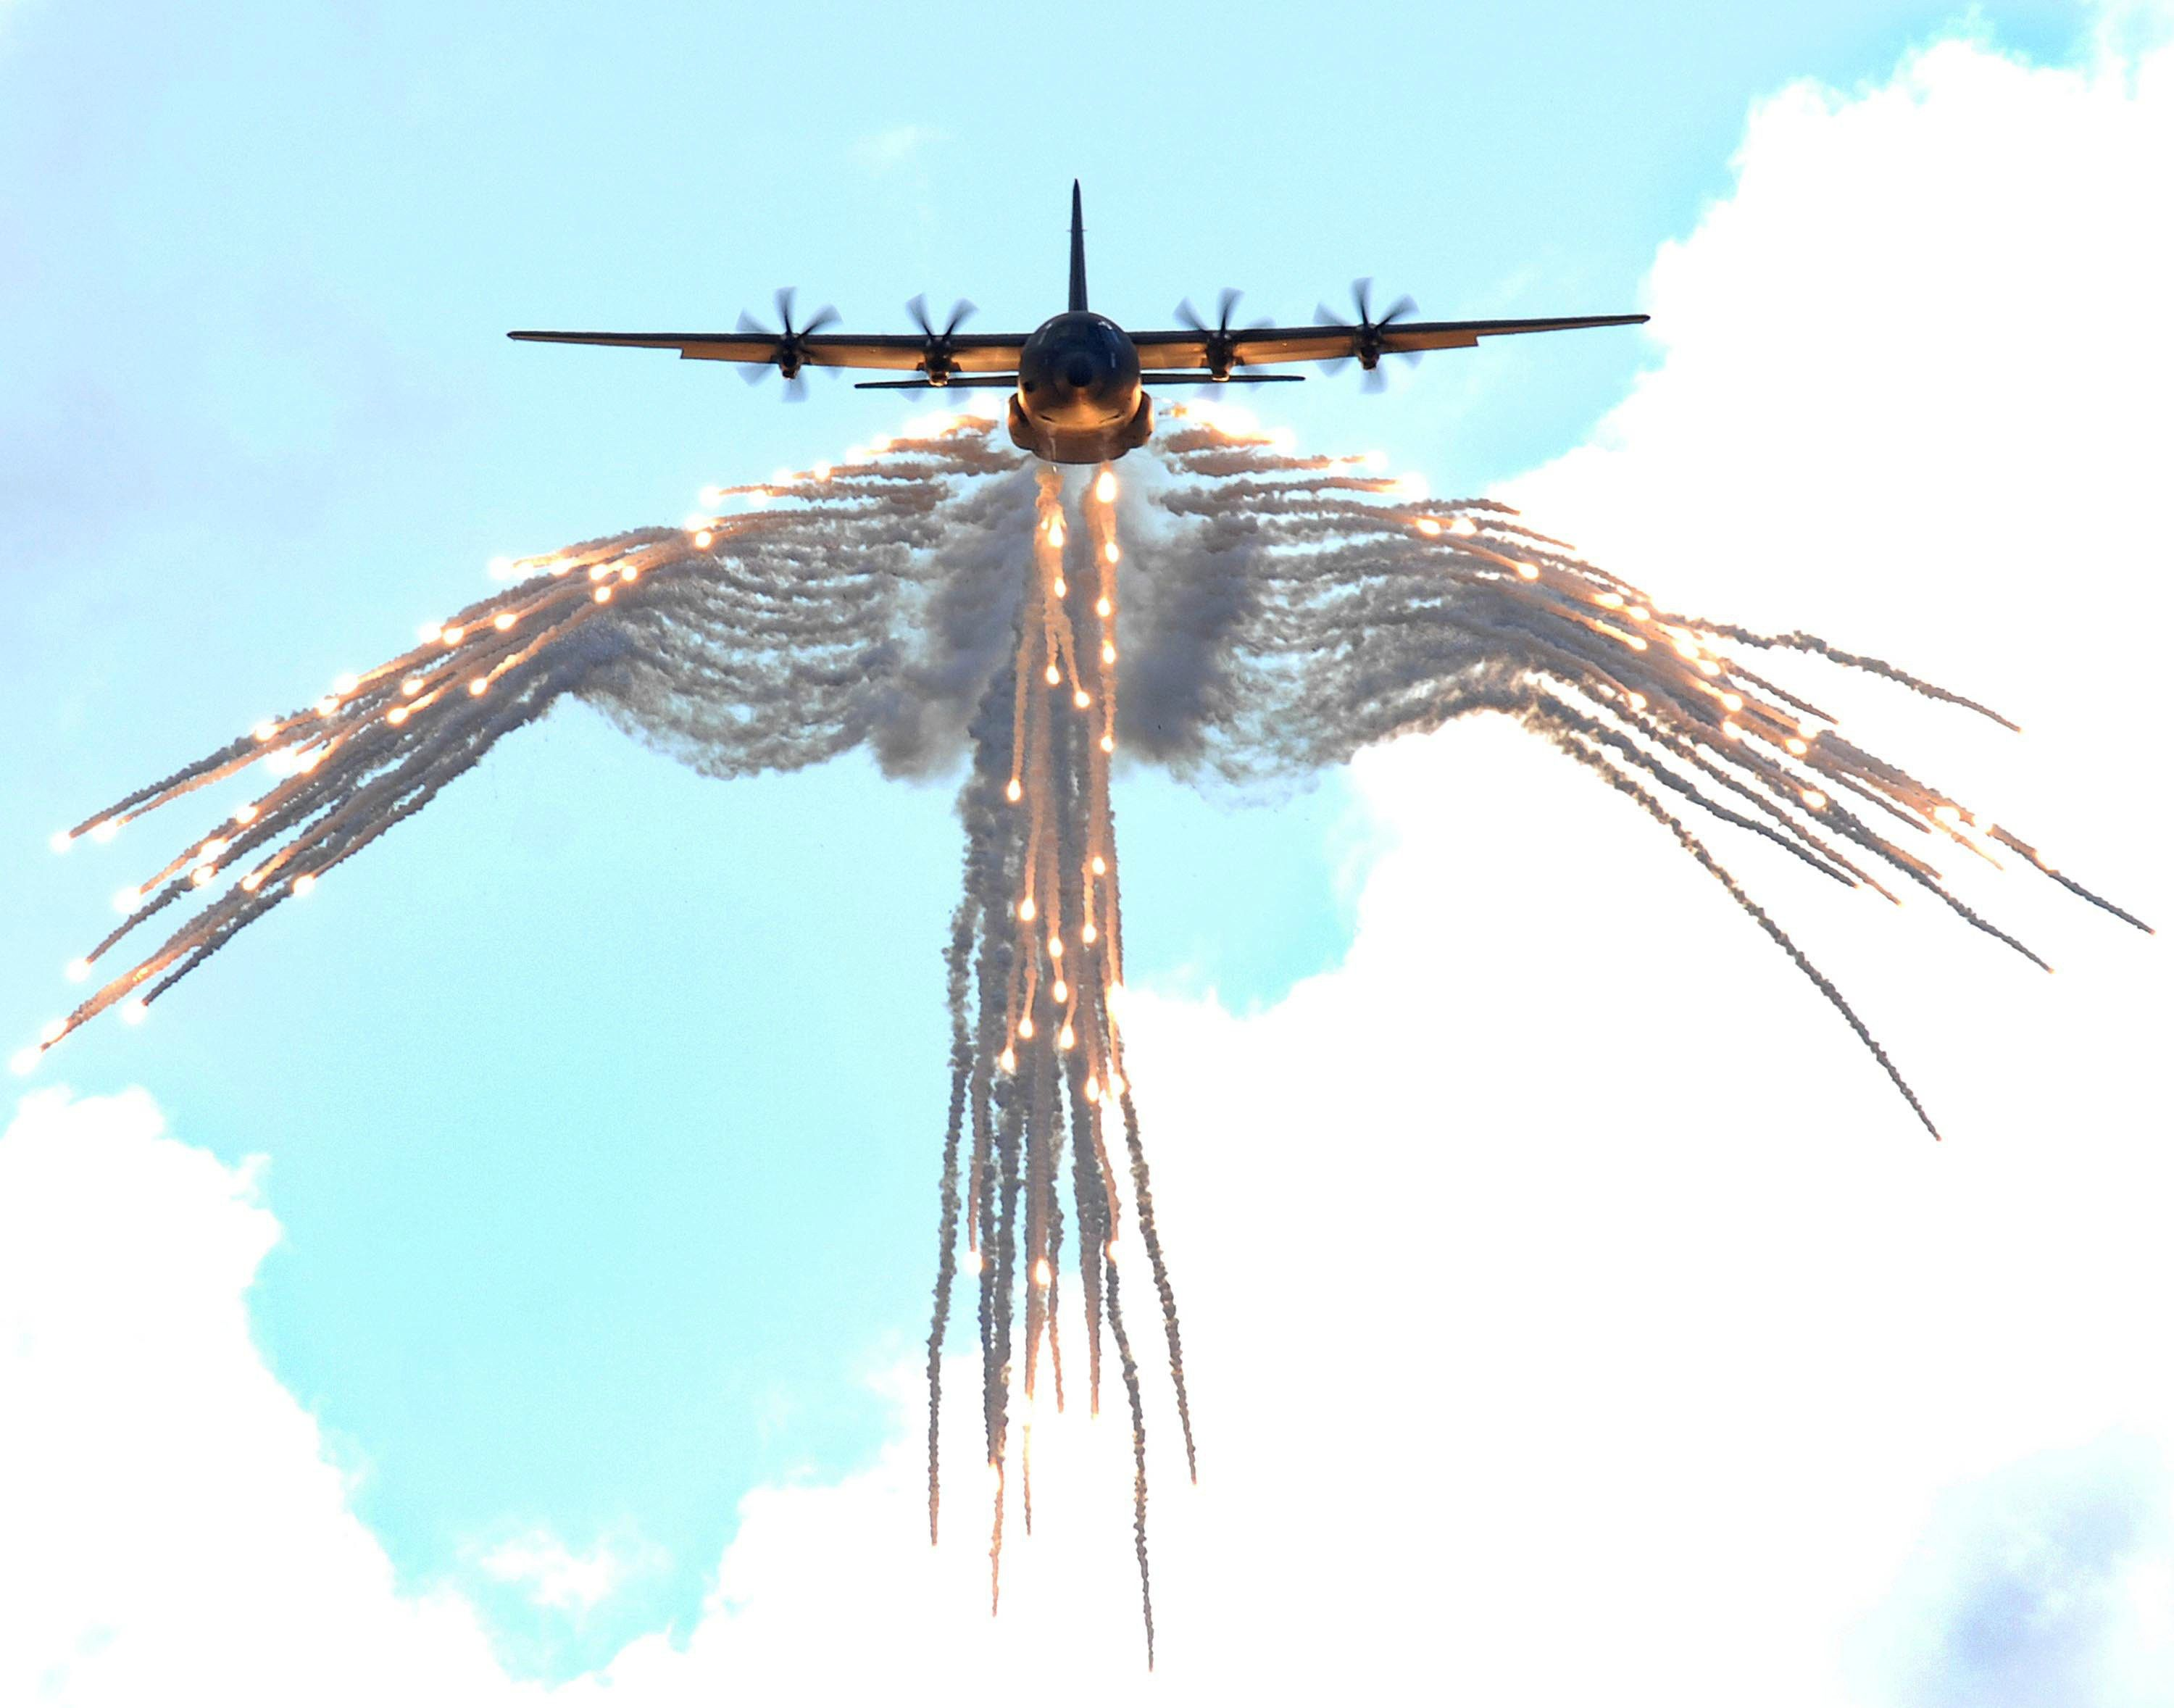 c 130 angel wings flare pattern saw this once when i was younger